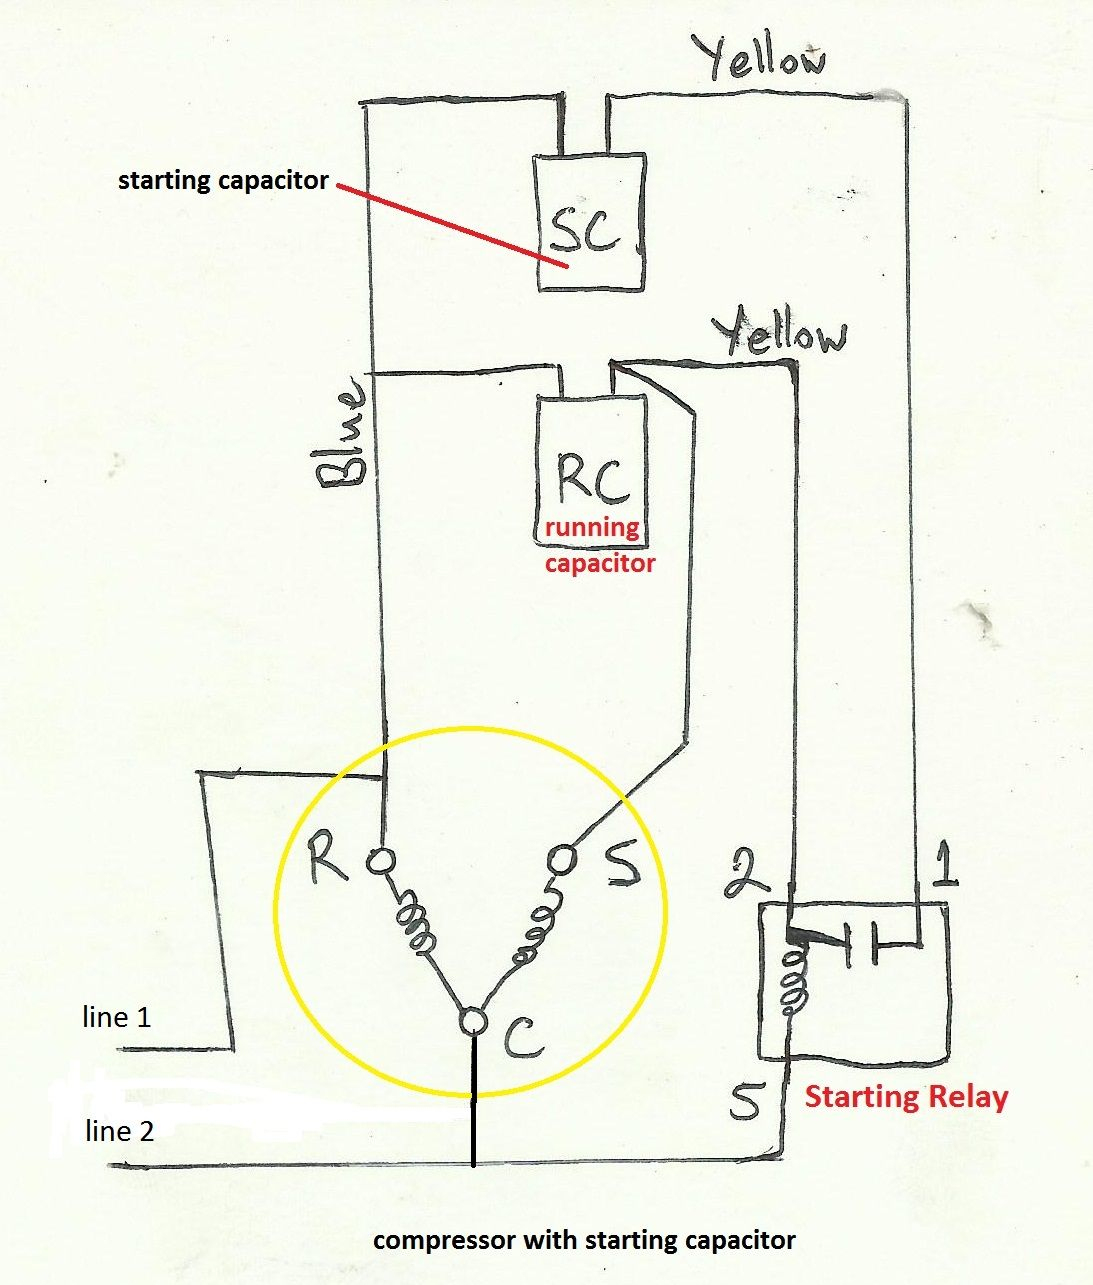 Capacitors For Compressor Wiring Diagram - Wiring Diagram Explained - Compressor Wiring Diagram Single Phase